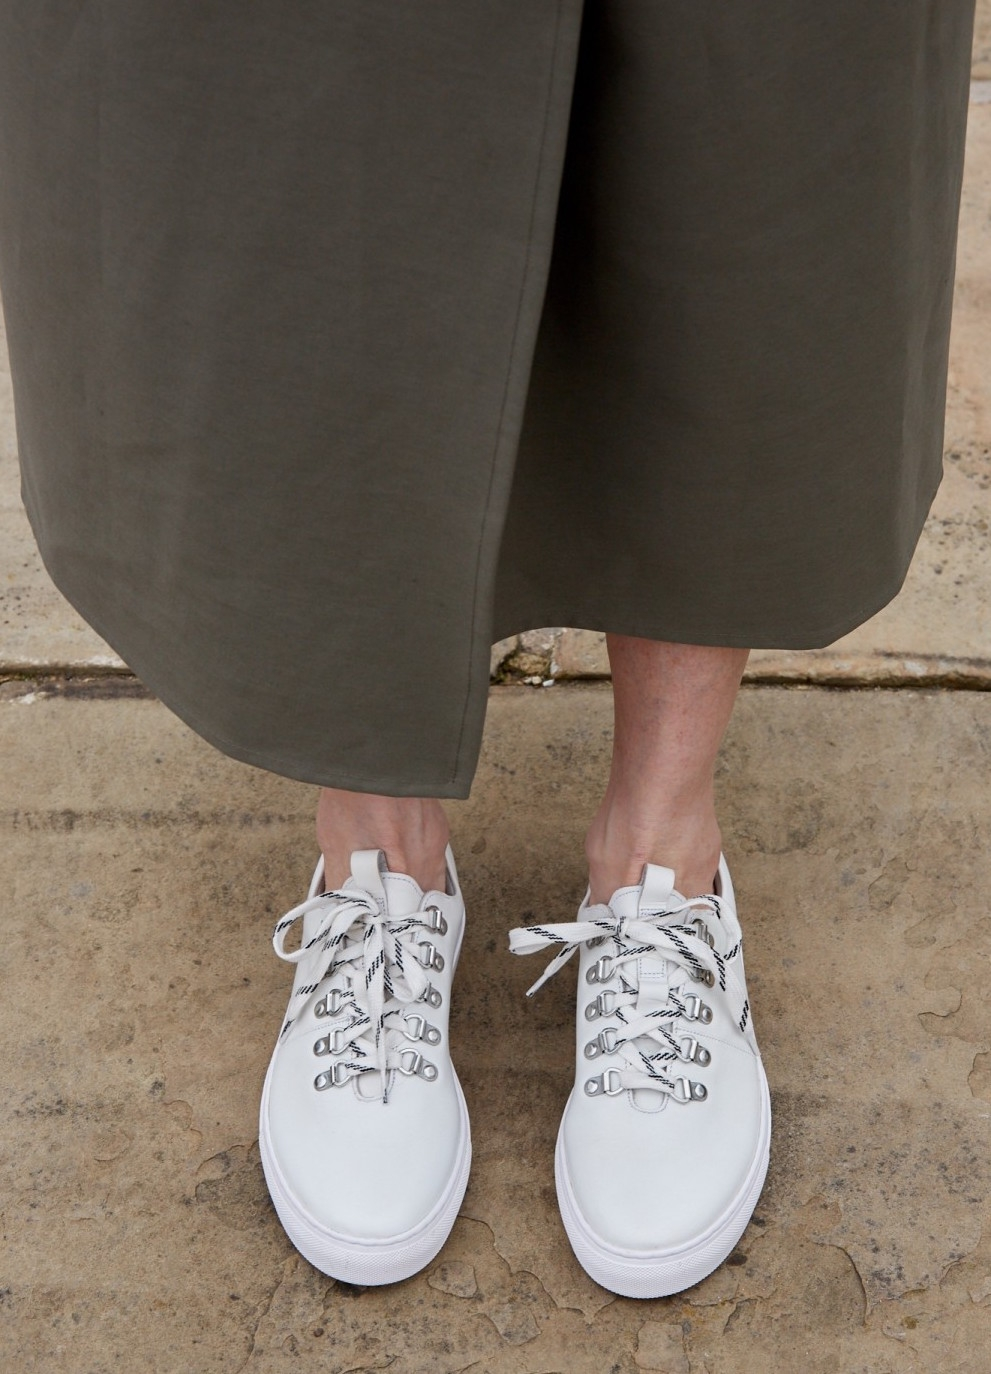 59939f07d Flat shoes forever: why I won't stop wearing comfy shoes and ...